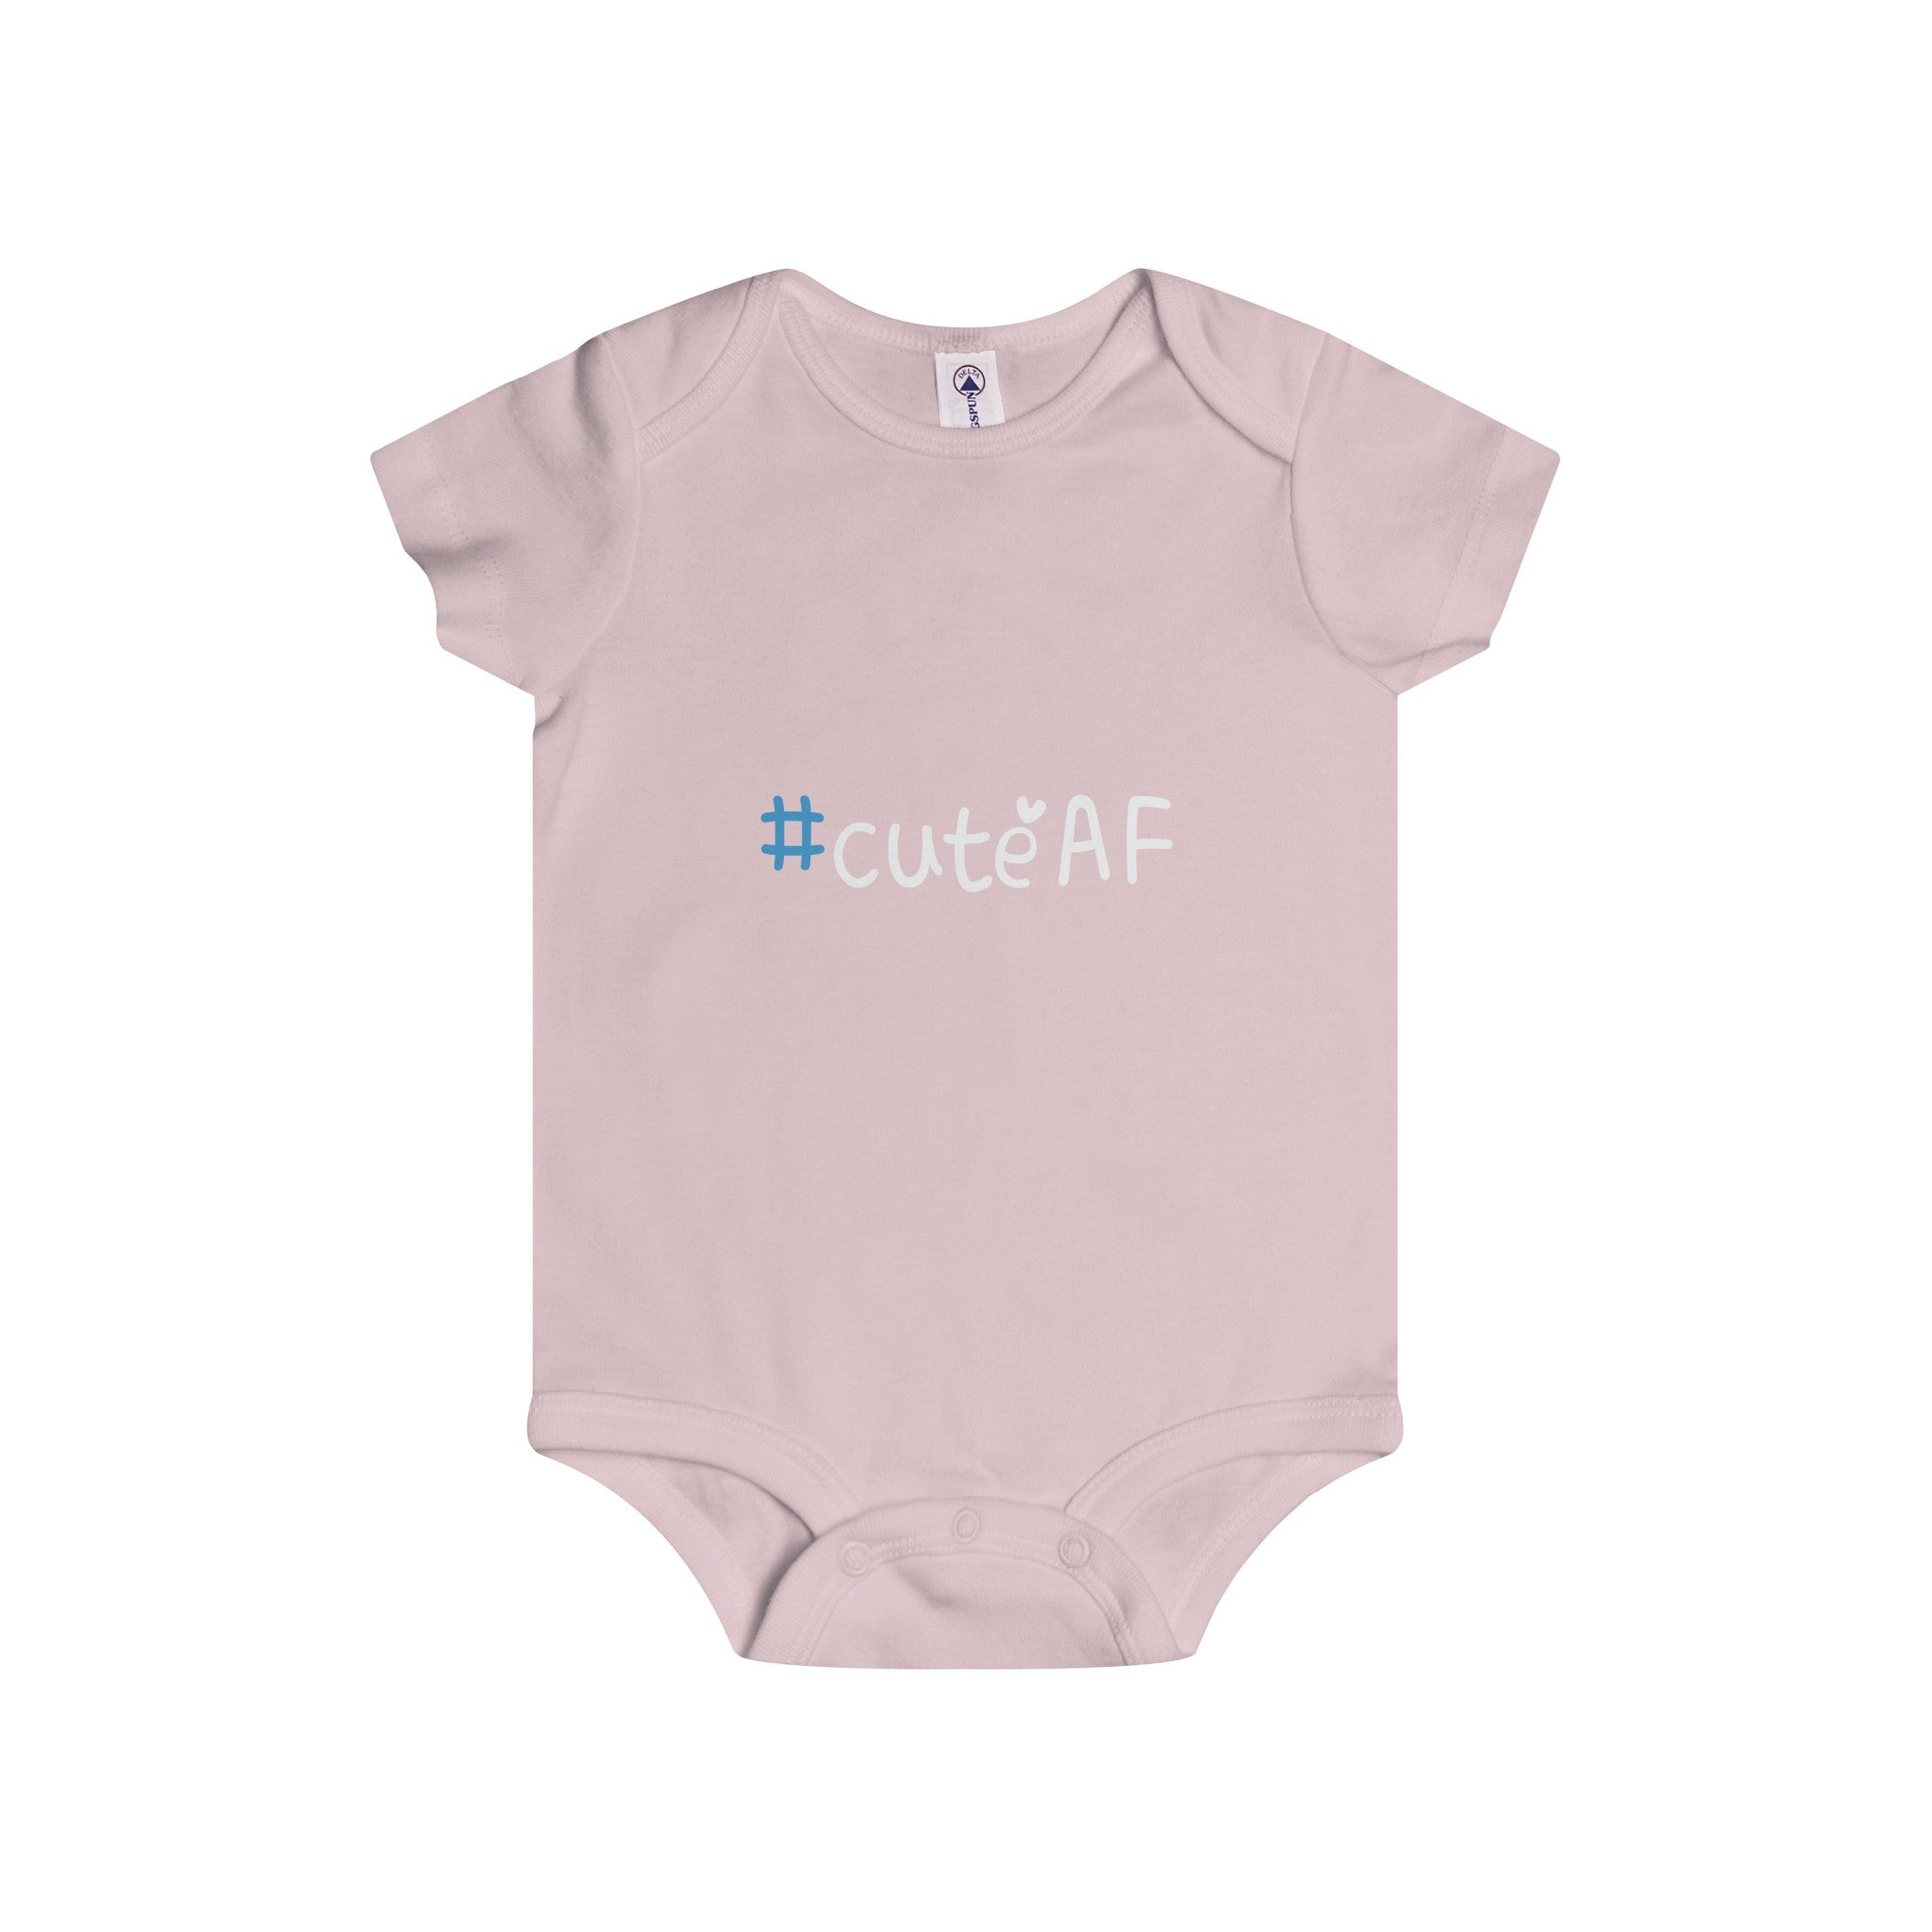 cuteAF hashtag #cuteAF infant's unisex onesie Nerdedness